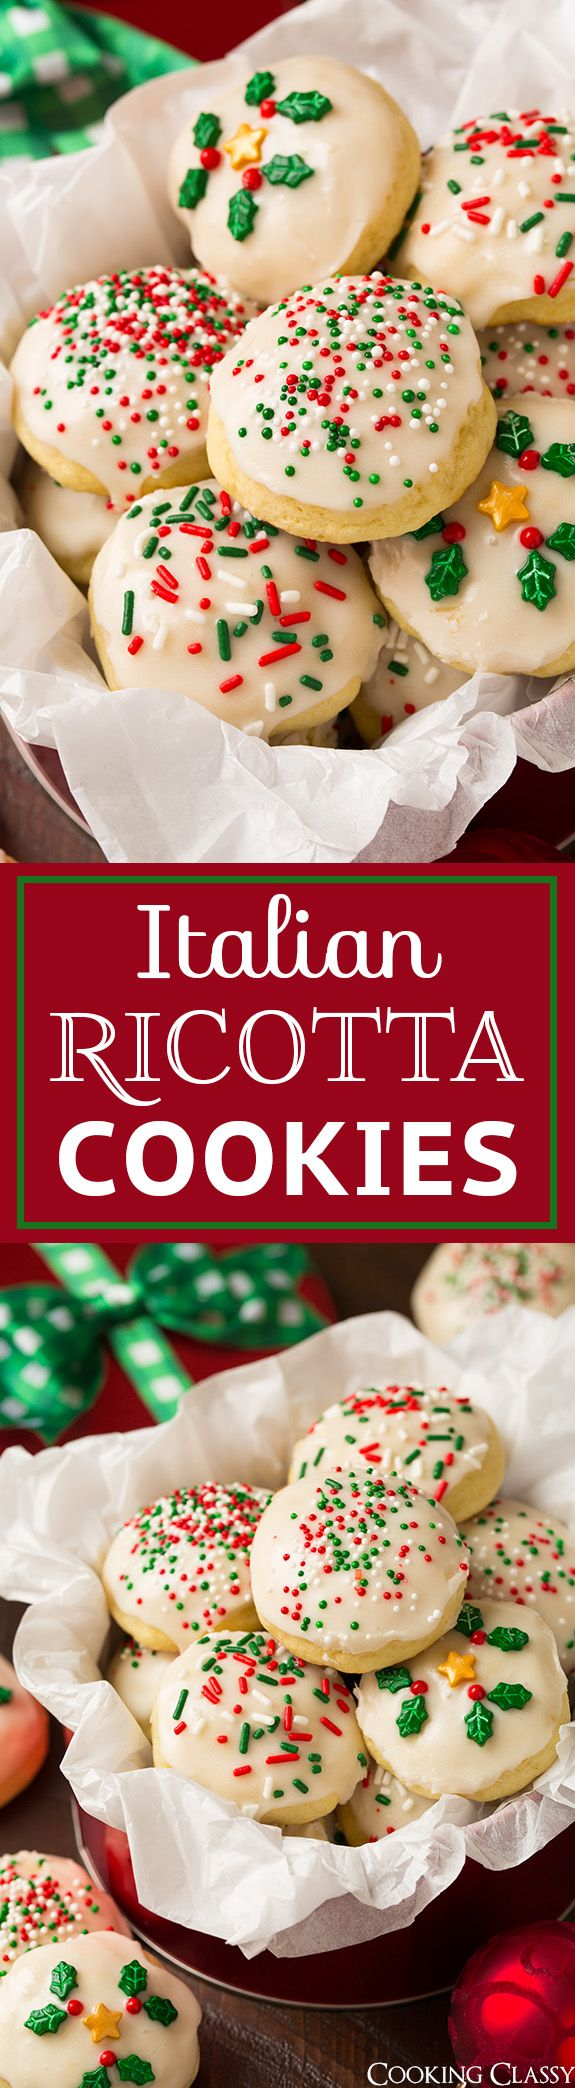 They're a deliciously soft, glaze covered cookie with a hint of lemon. (Italian Recipes Cookies)